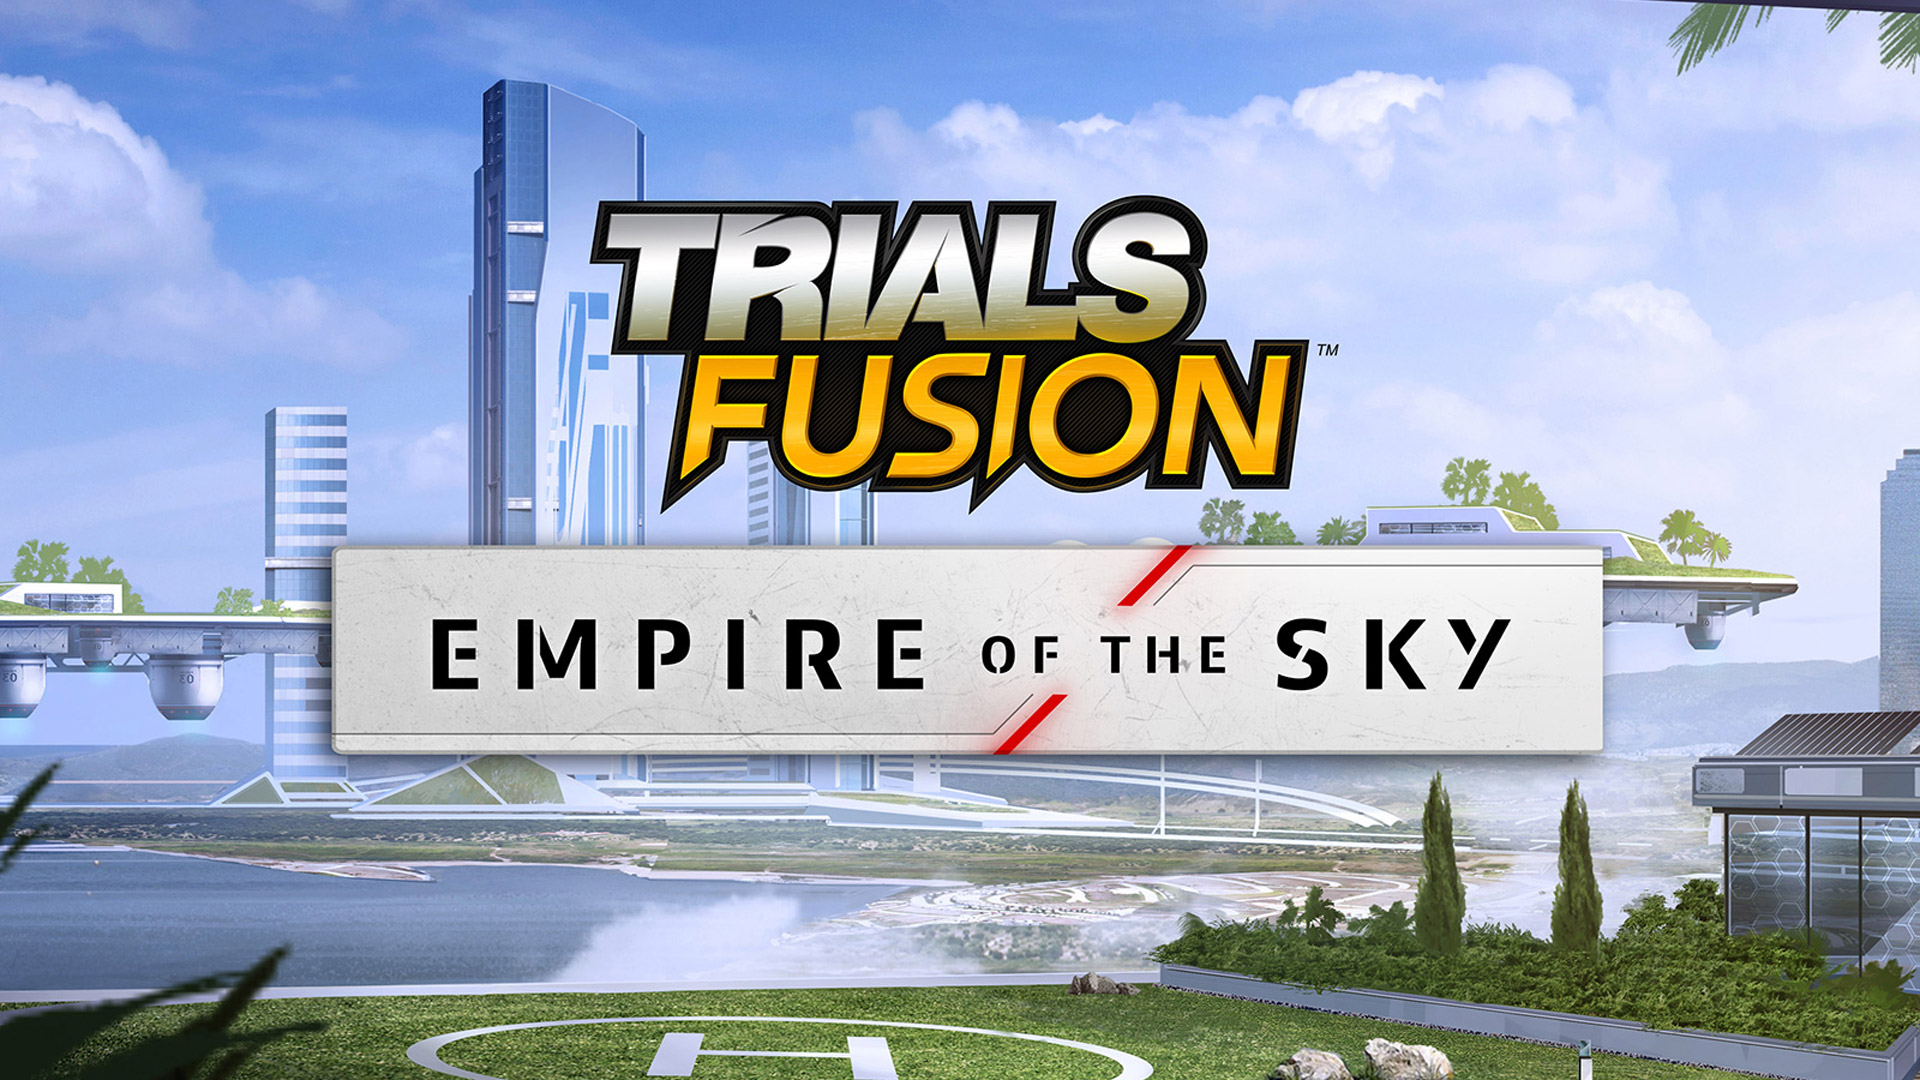 Trials Fusion Wallpaper in 1920x1080